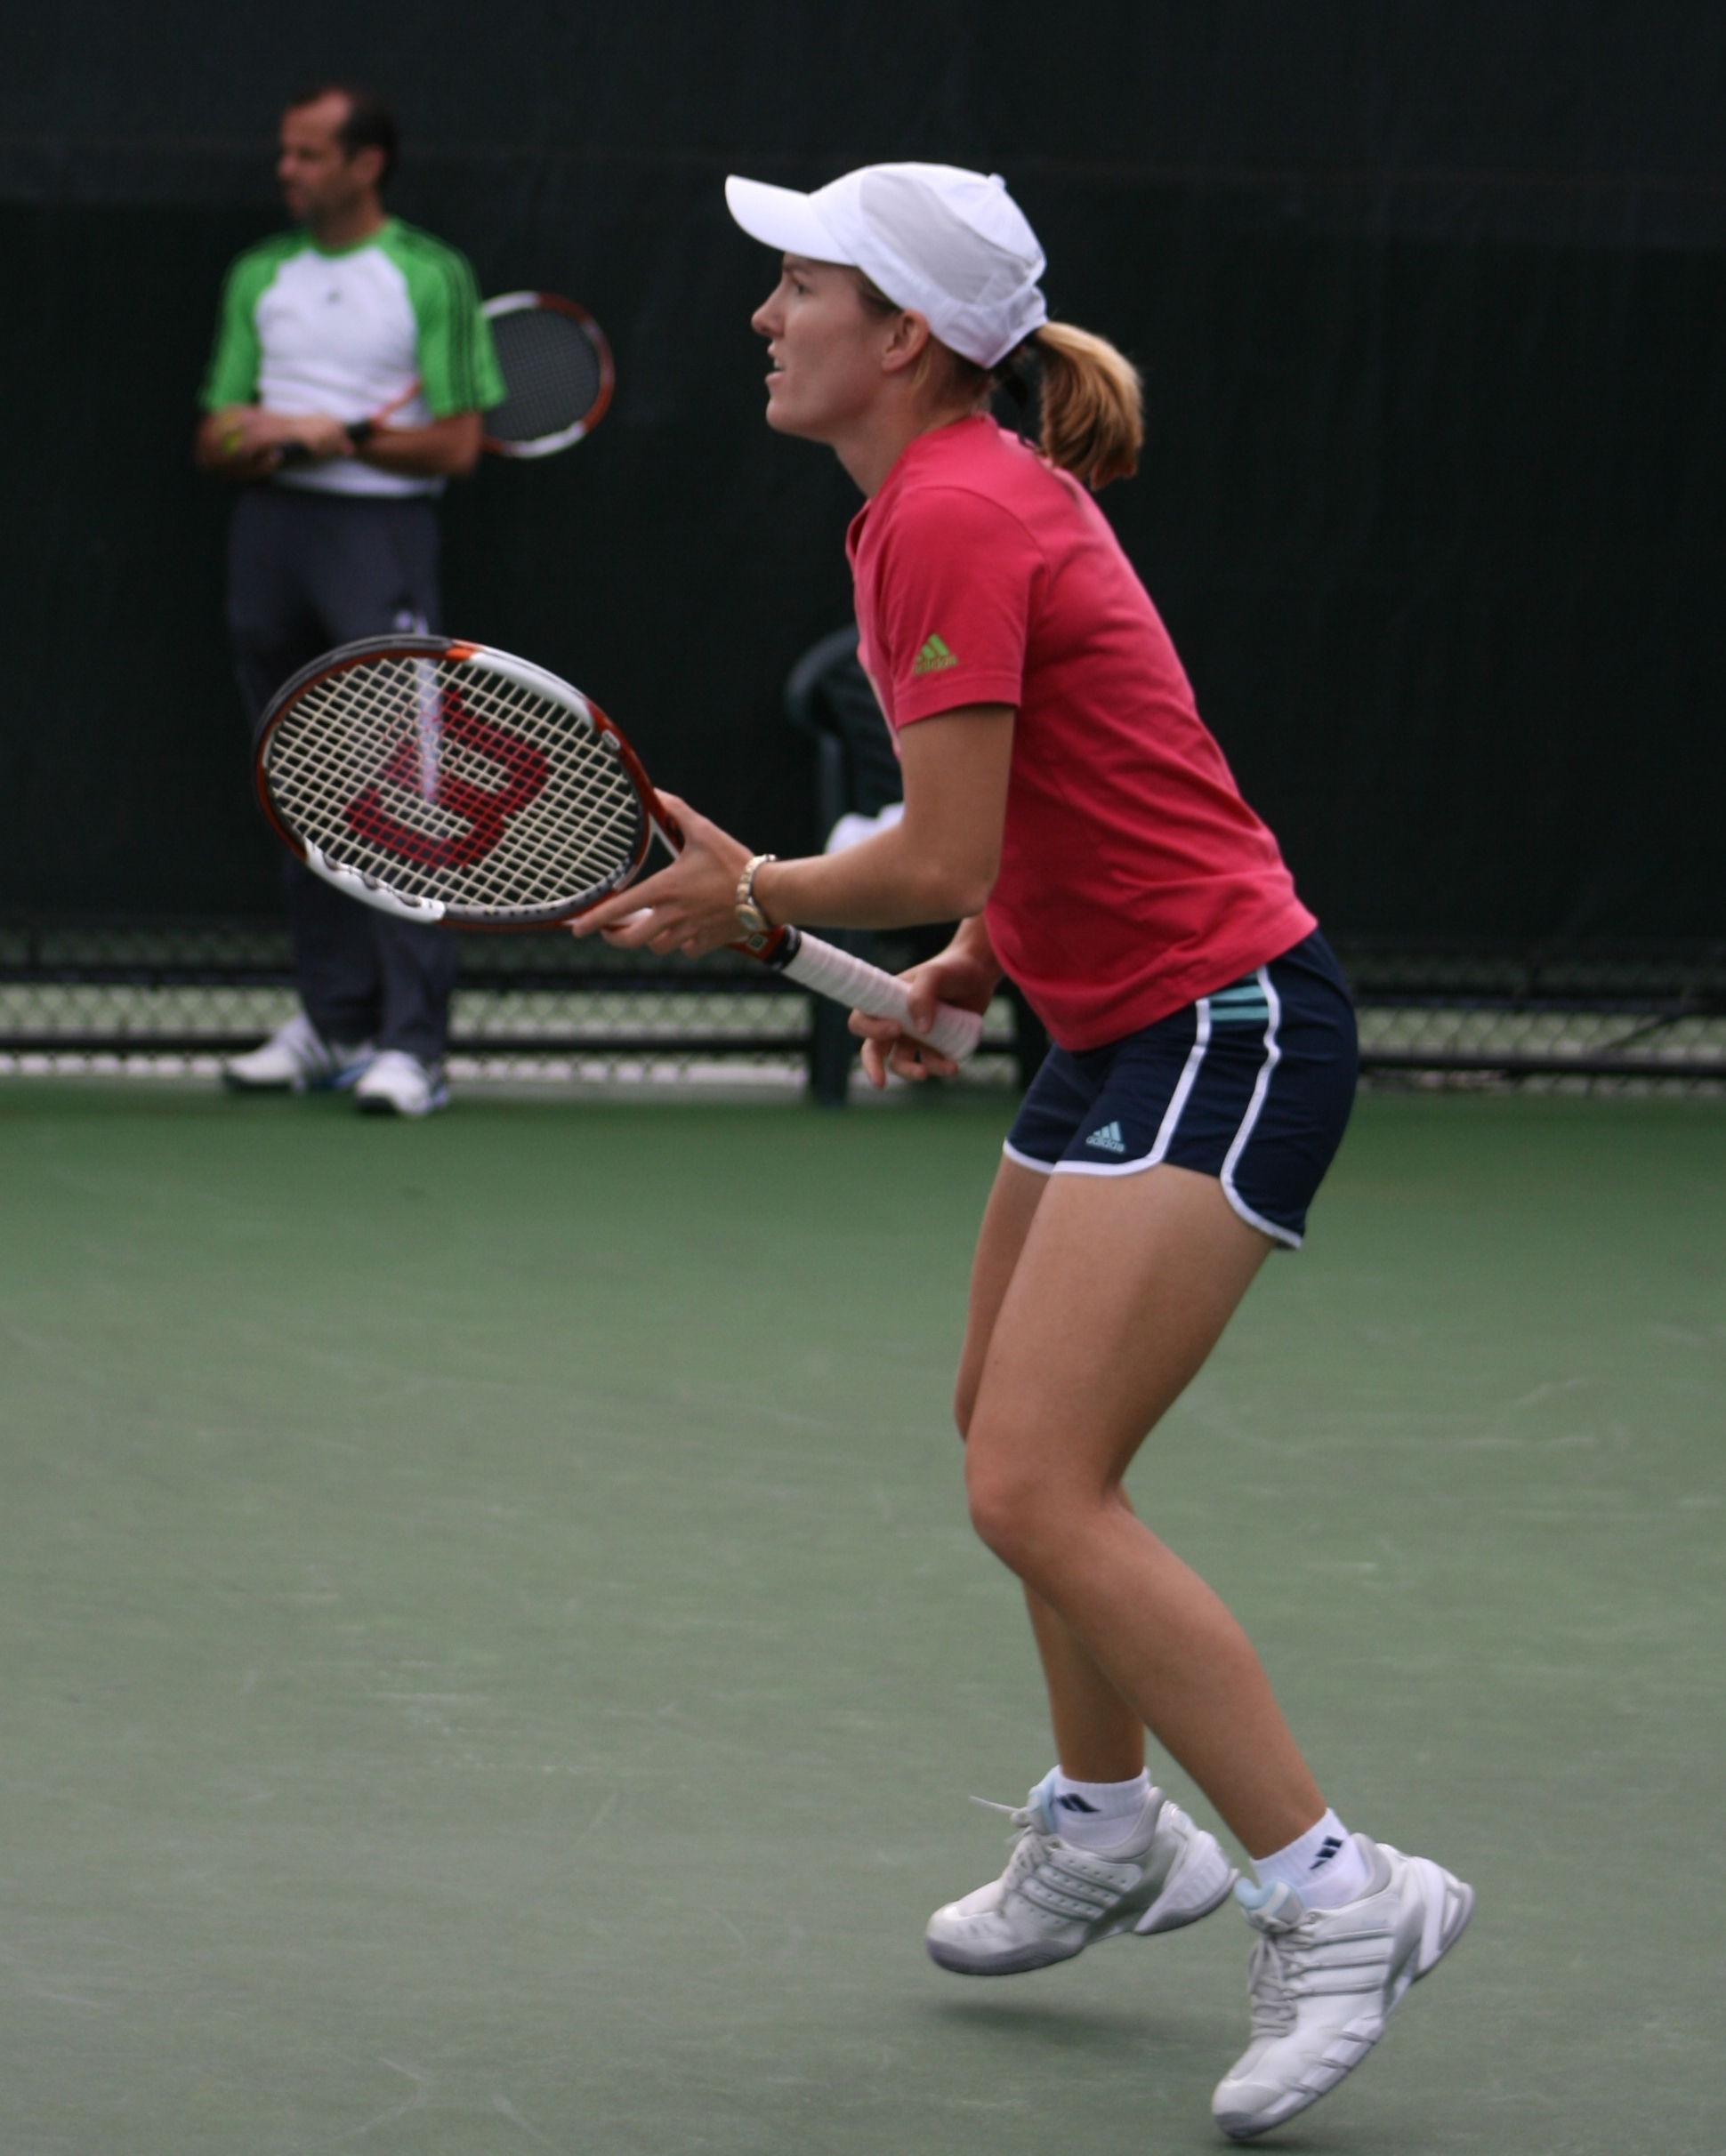 Justine Henin I m scared of ending up lonely and lost again